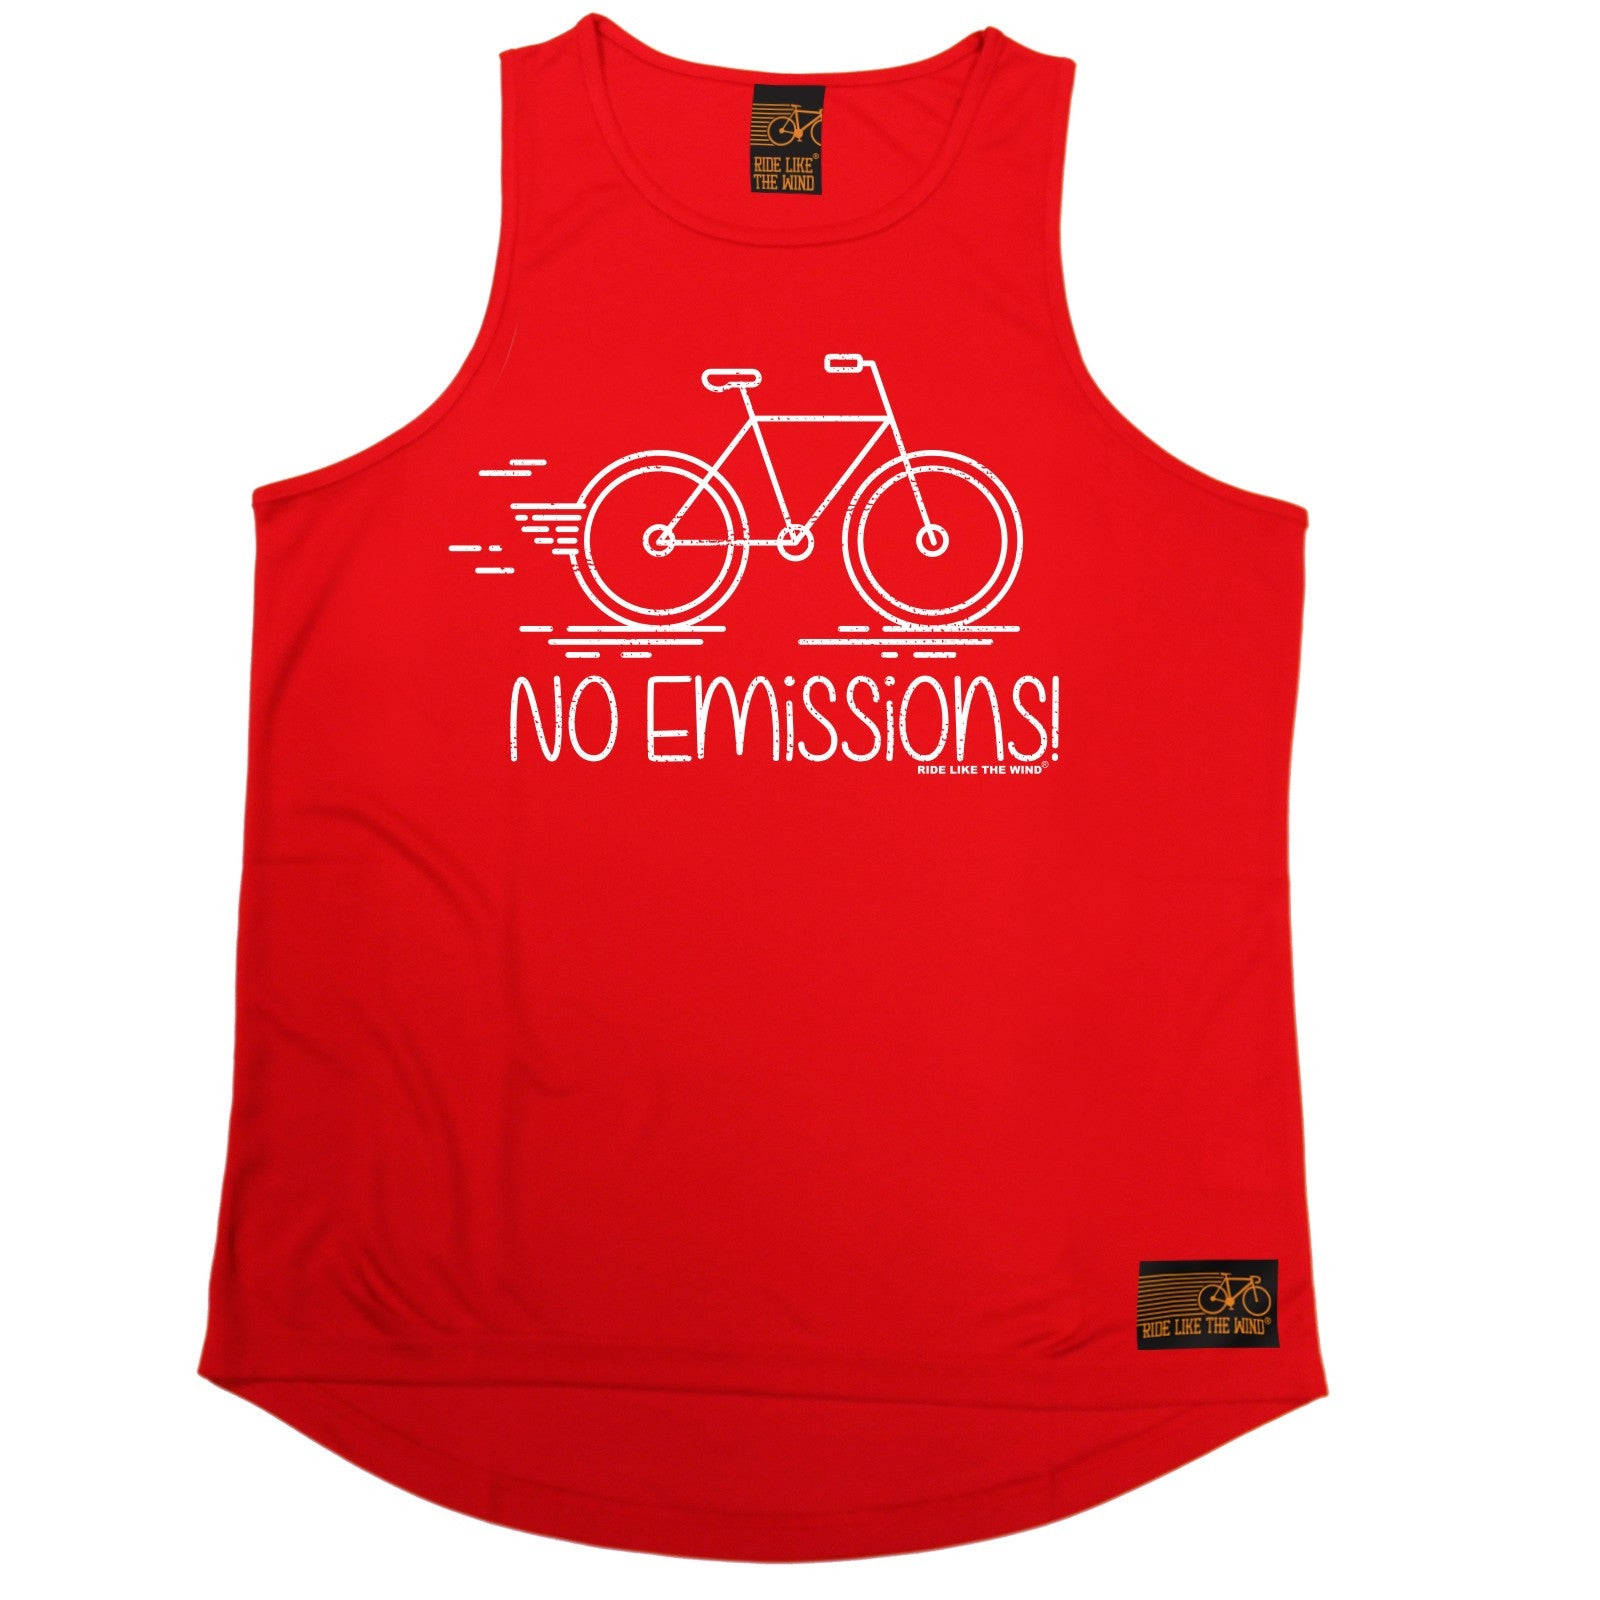 No-Emissions-RLTW-MENS-DRY-FIT-VEST-singlet-cycling-cyclist-bicycle-birthday